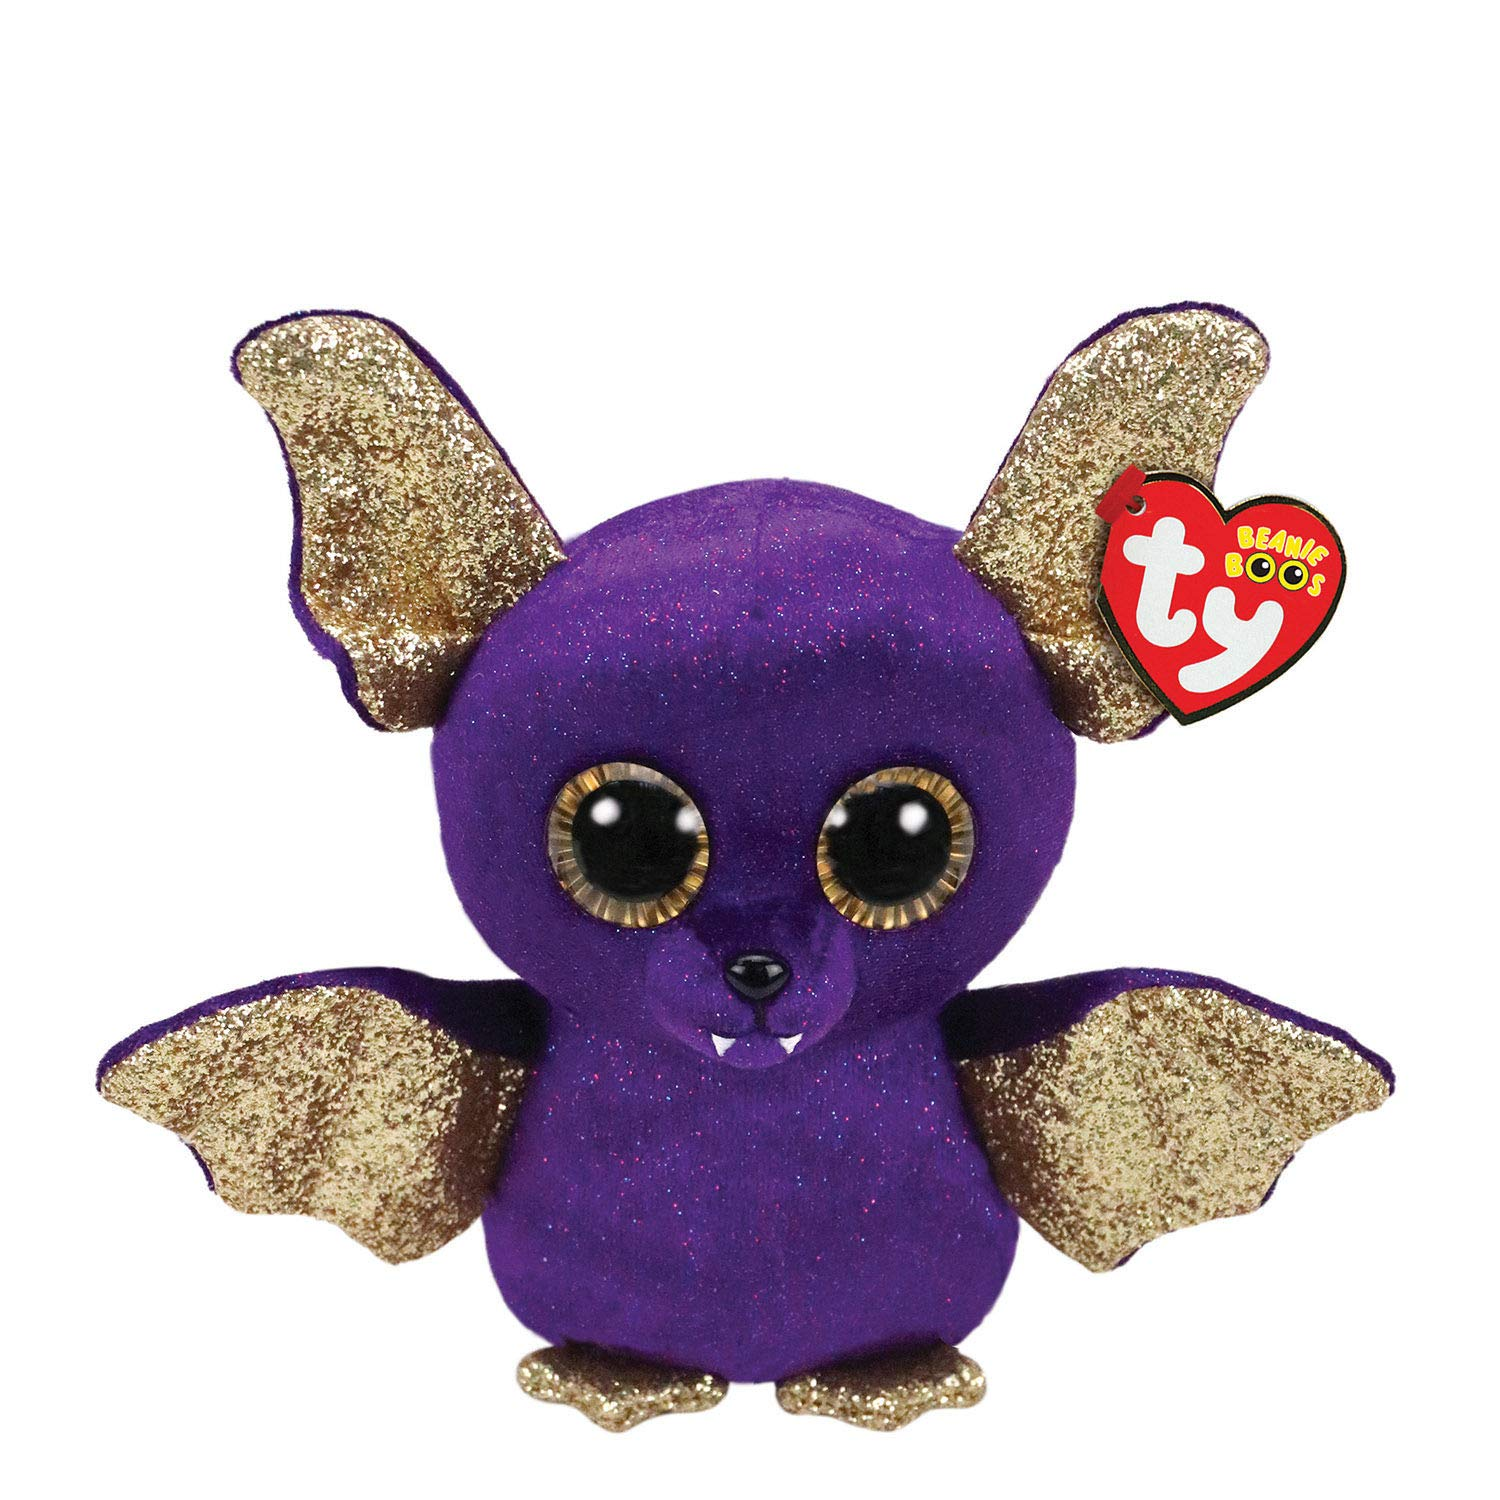 8c0d2aa21eb Amazon.com  Ty Beanies Claire s Girl s Boo Small Count The Bat Plush Toy  Ty  Beanies  Toys   Games